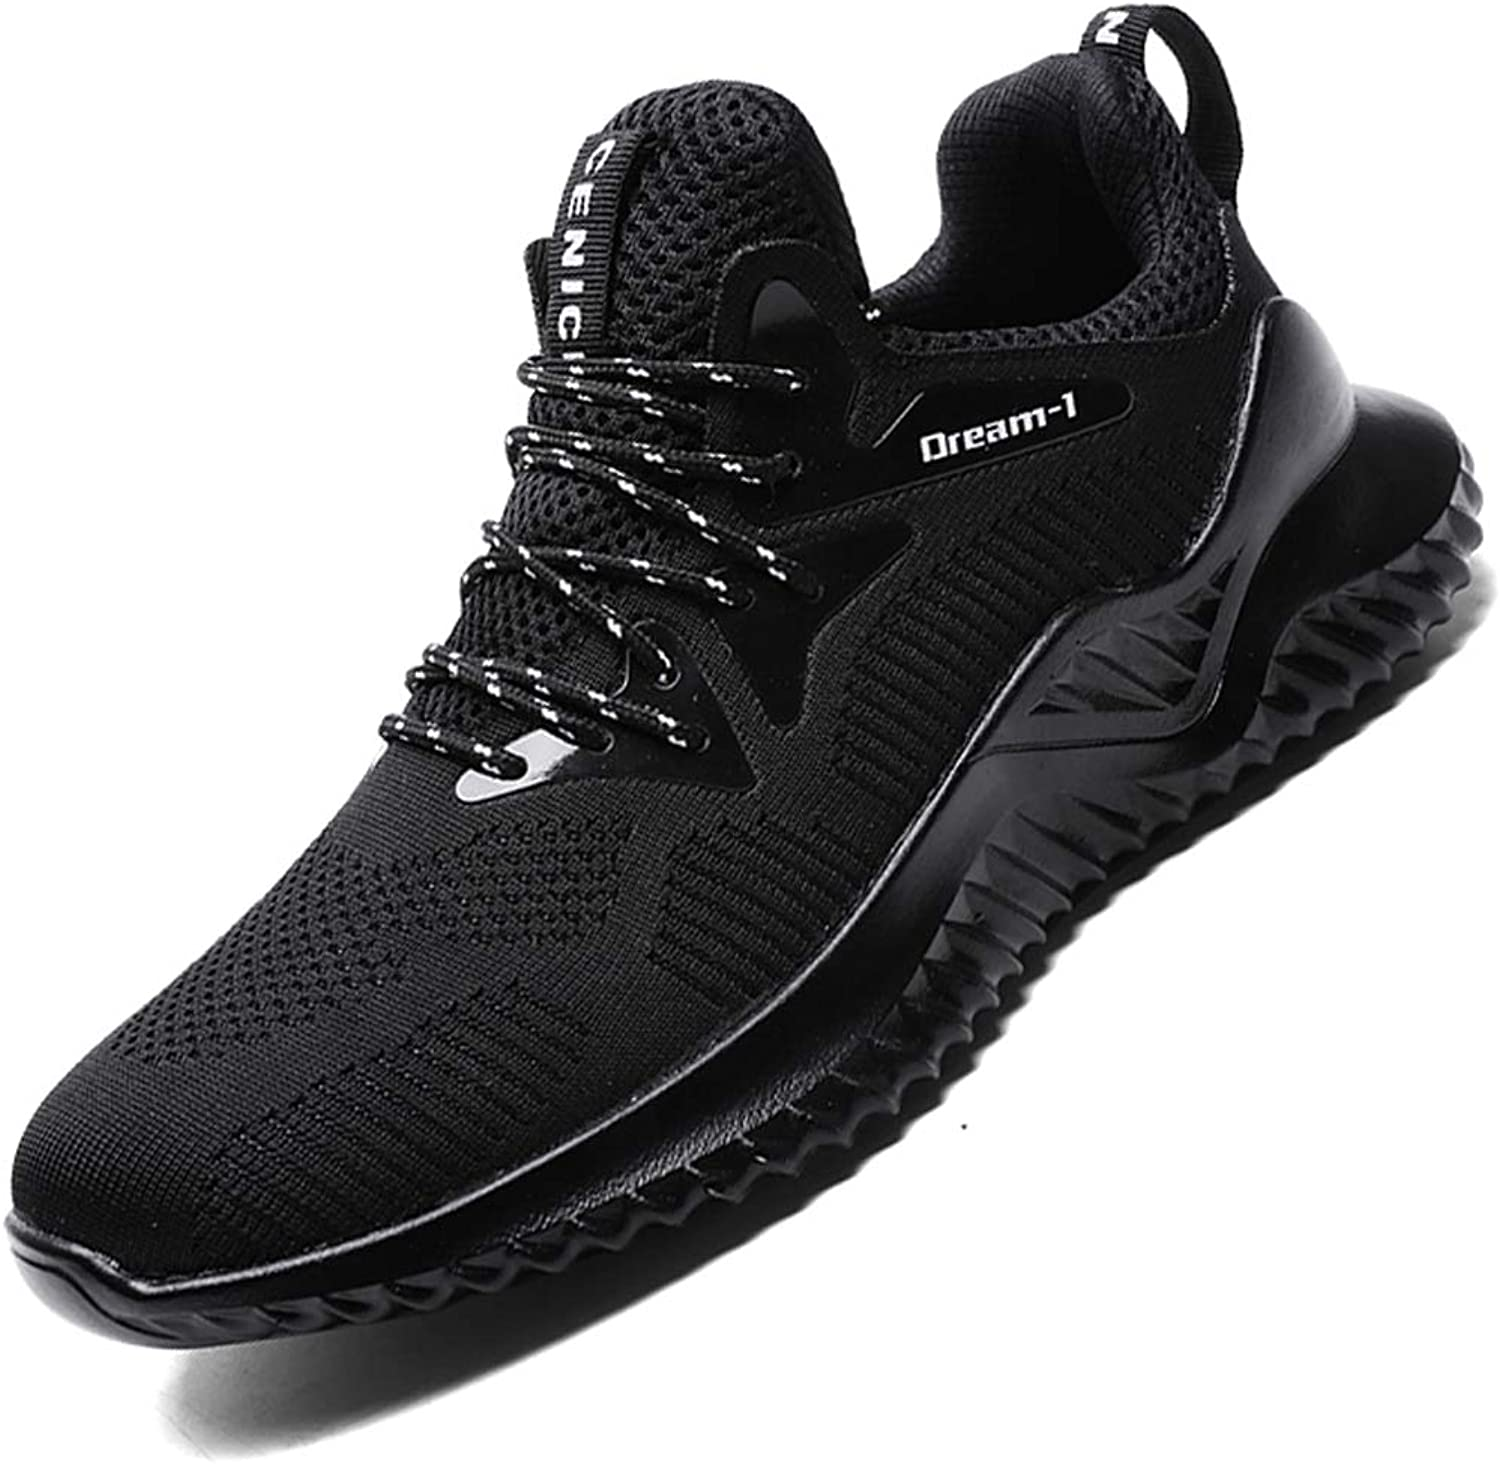 SKDOIUL All Black Sneakers for Men mesh Breathable Comfort Youth Boys Tennis shoes Athletic Walking shoes Gym Workout Trail Sneaker Size 12 (1810-black-46)